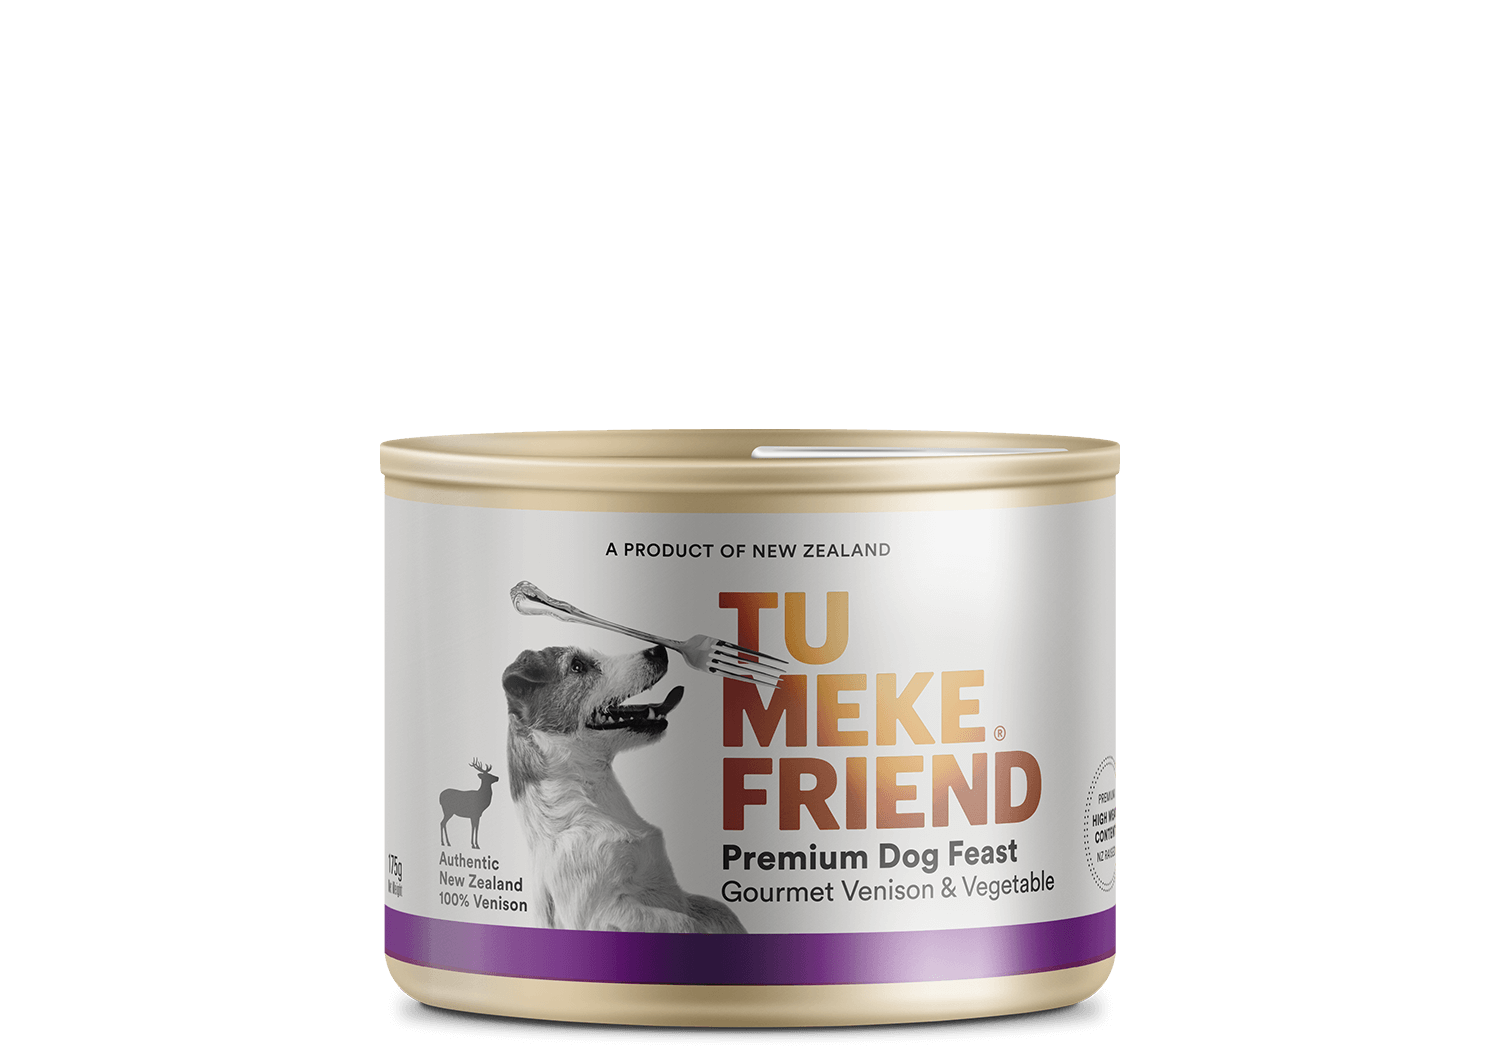 Tu Meke Product Page 175g Can Gourmet Vension and Vege Buffer Top 2